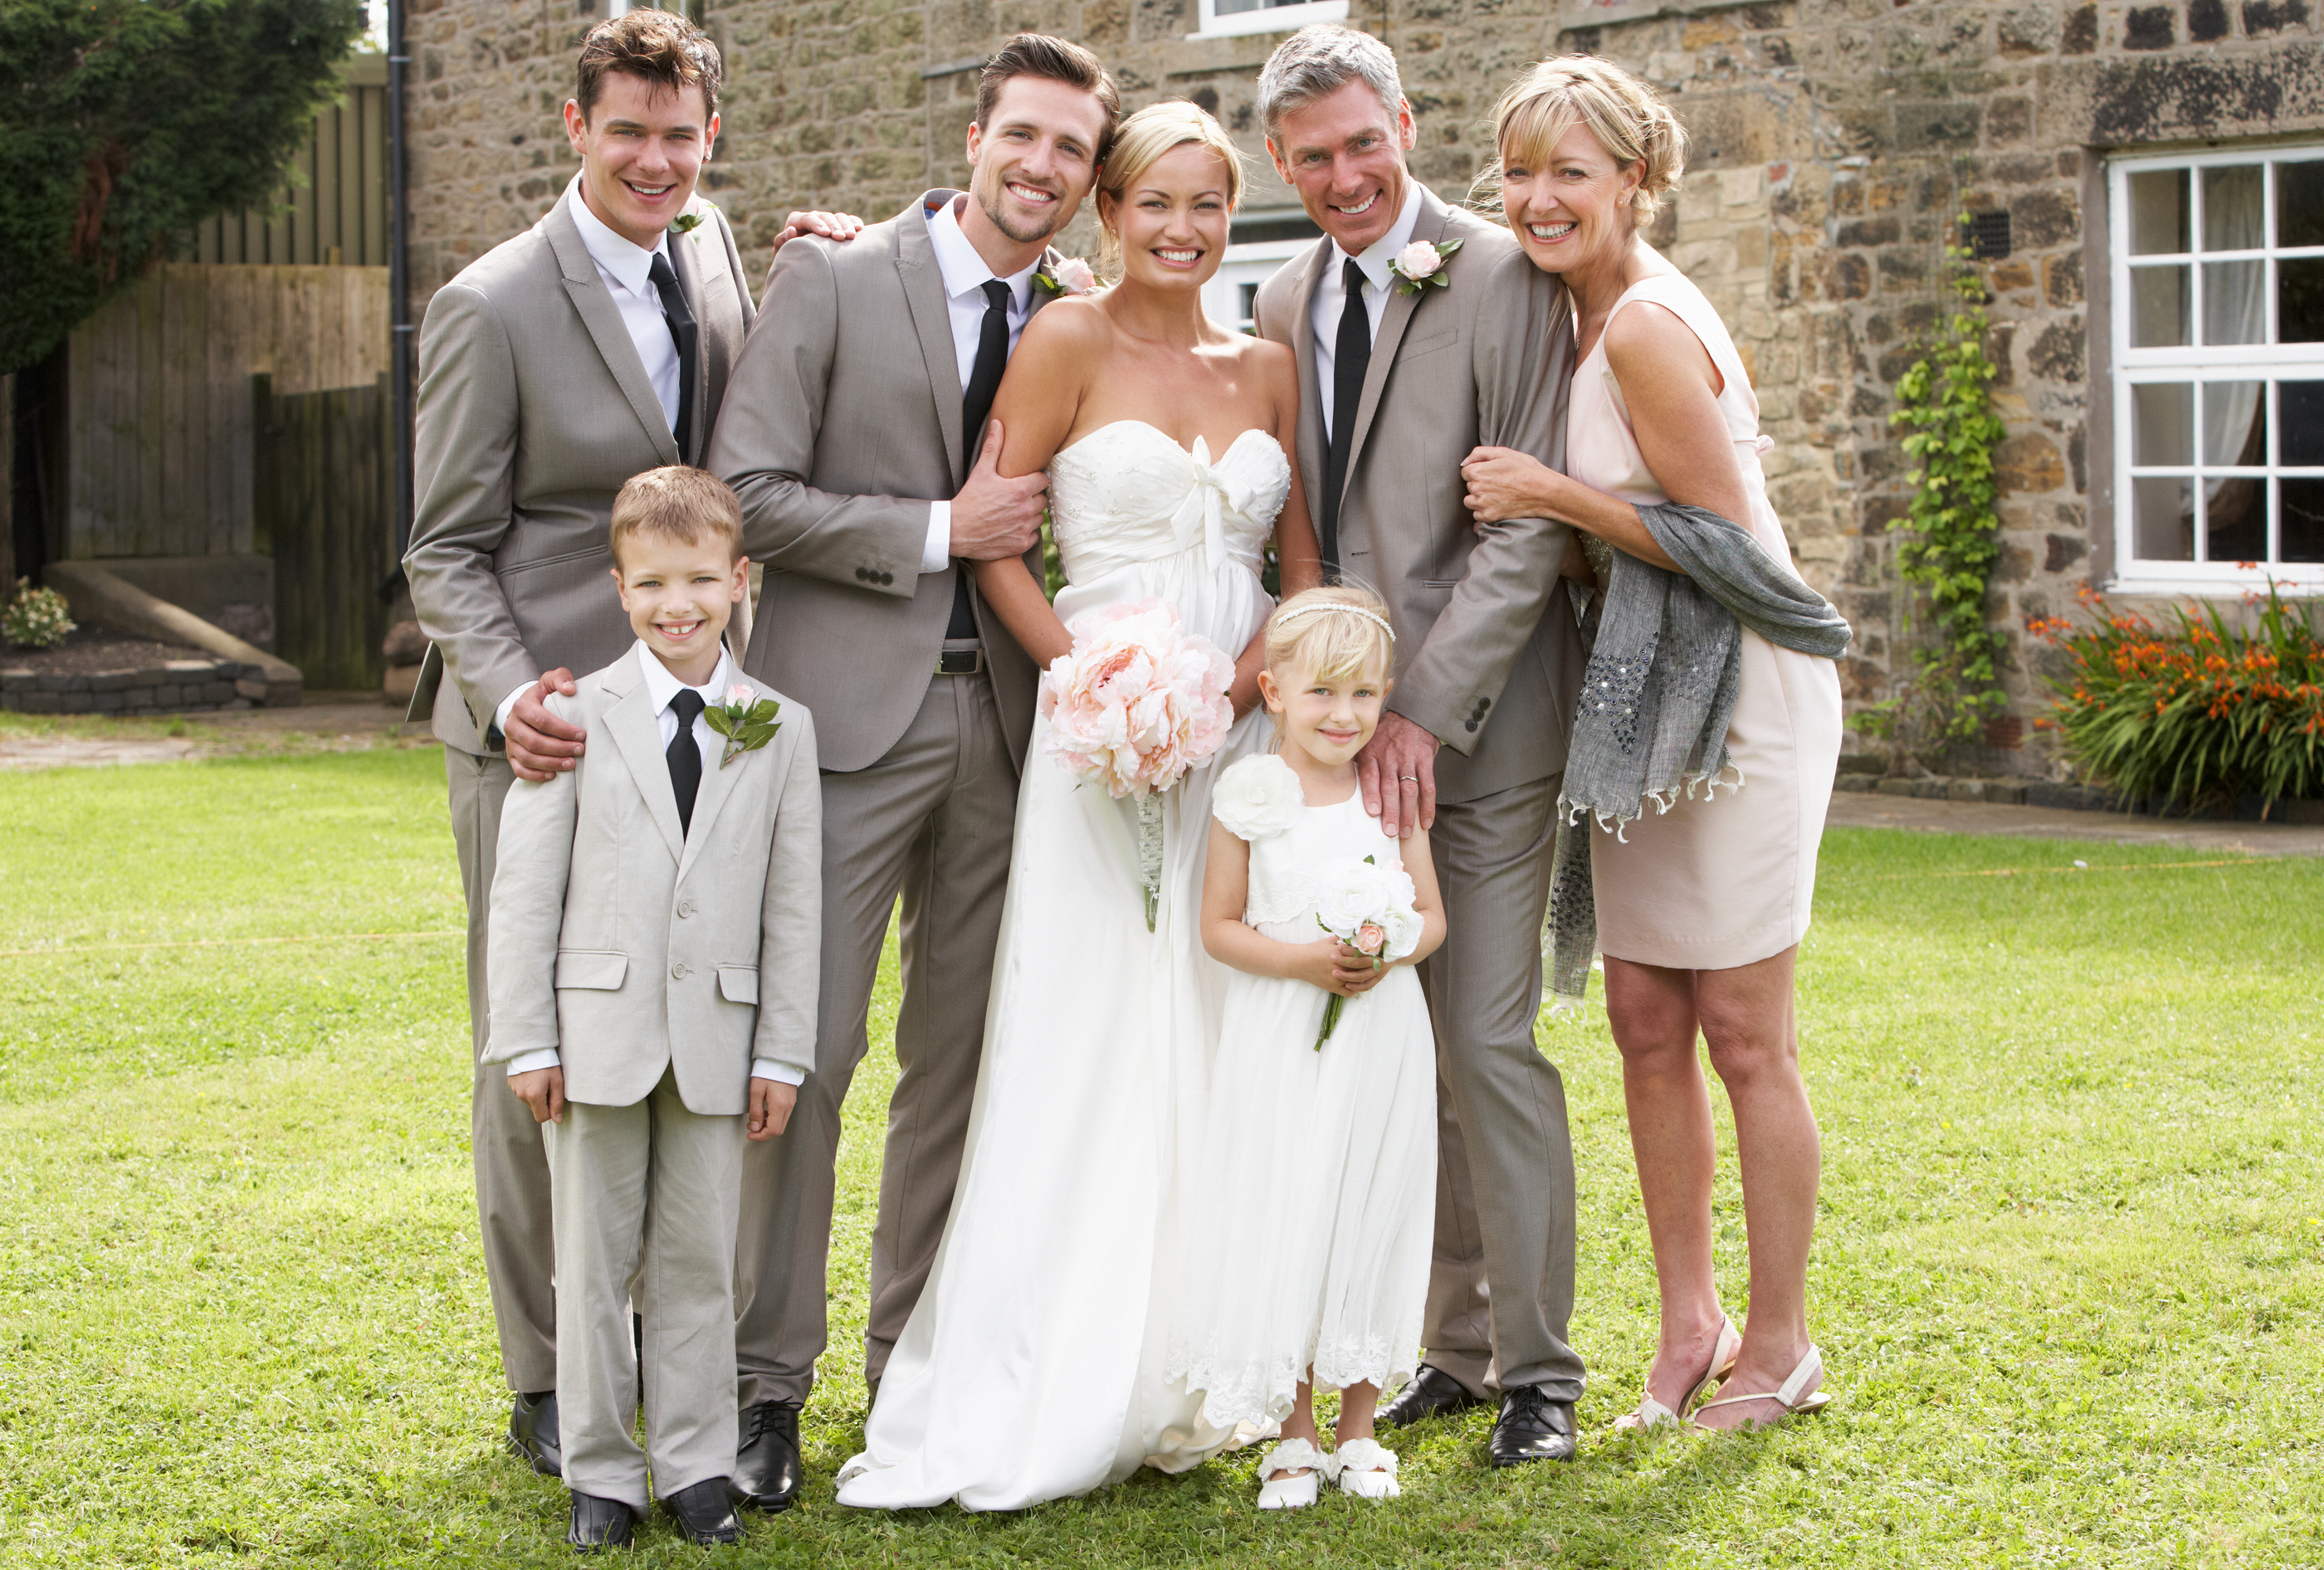 The history behind wedding traditions